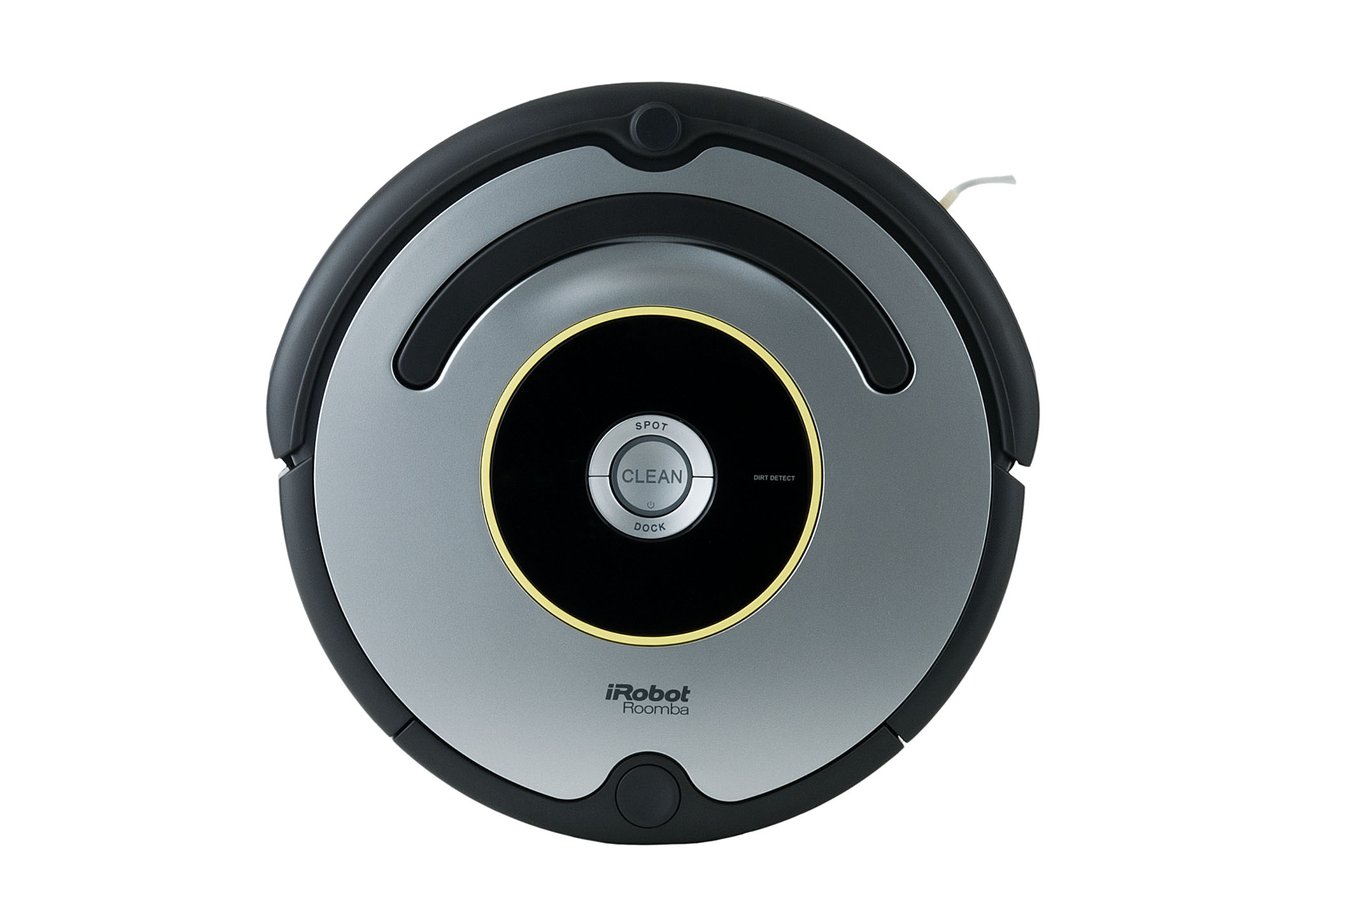 fiche technique aspirateur robot roomba. Black Bedroom Furniture Sets. Home Design Ideas